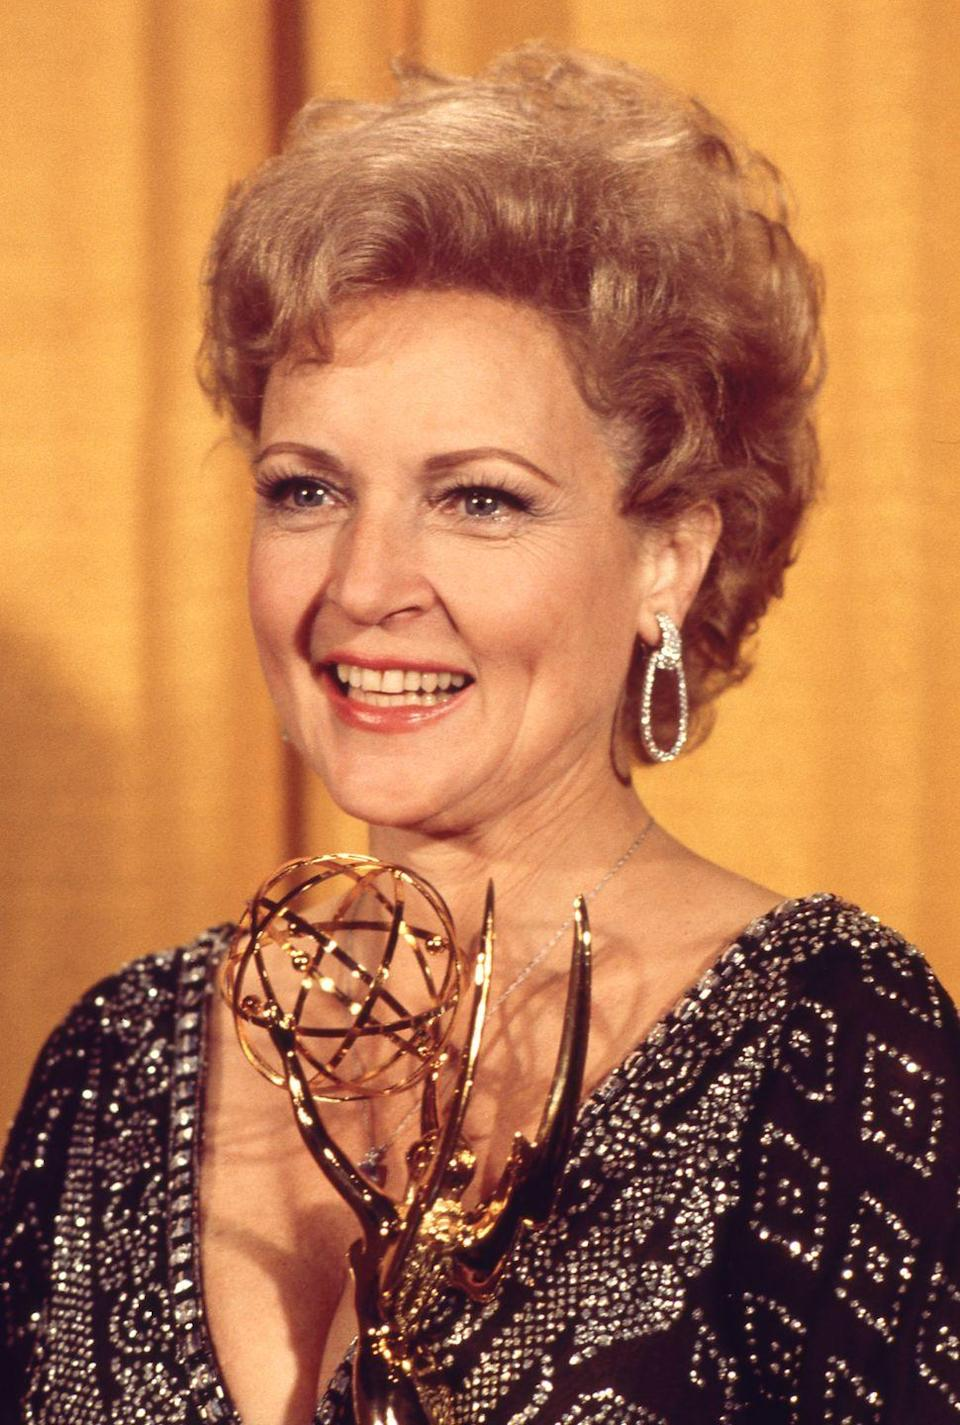 <p>White's portrayal of Sue Ann in <em>The Mary Tyler Moore Show</em> led to her winning two Emmy Awards for Best Supporting Actress in a Comedy Series. <br></p>